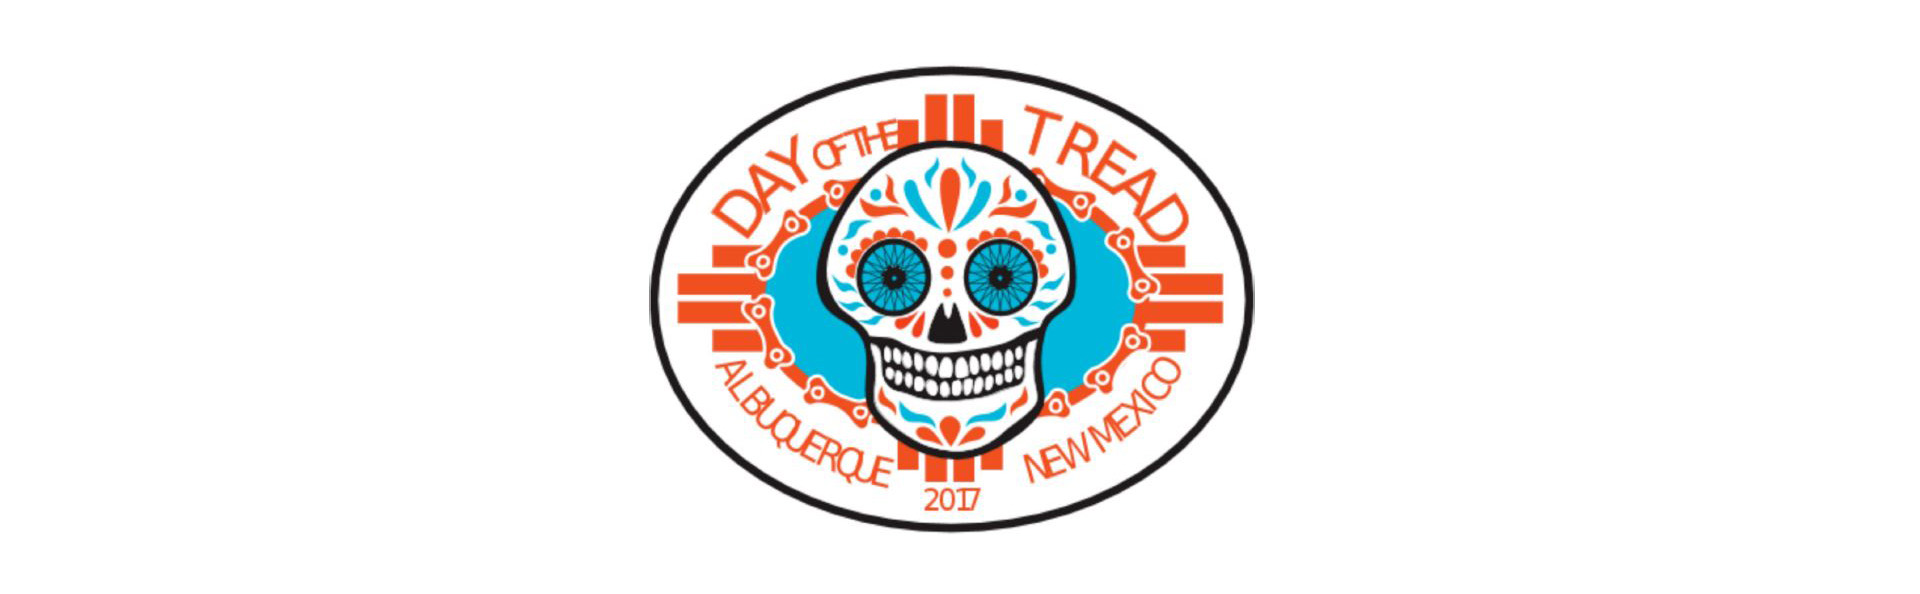 Day of the Tread 2019